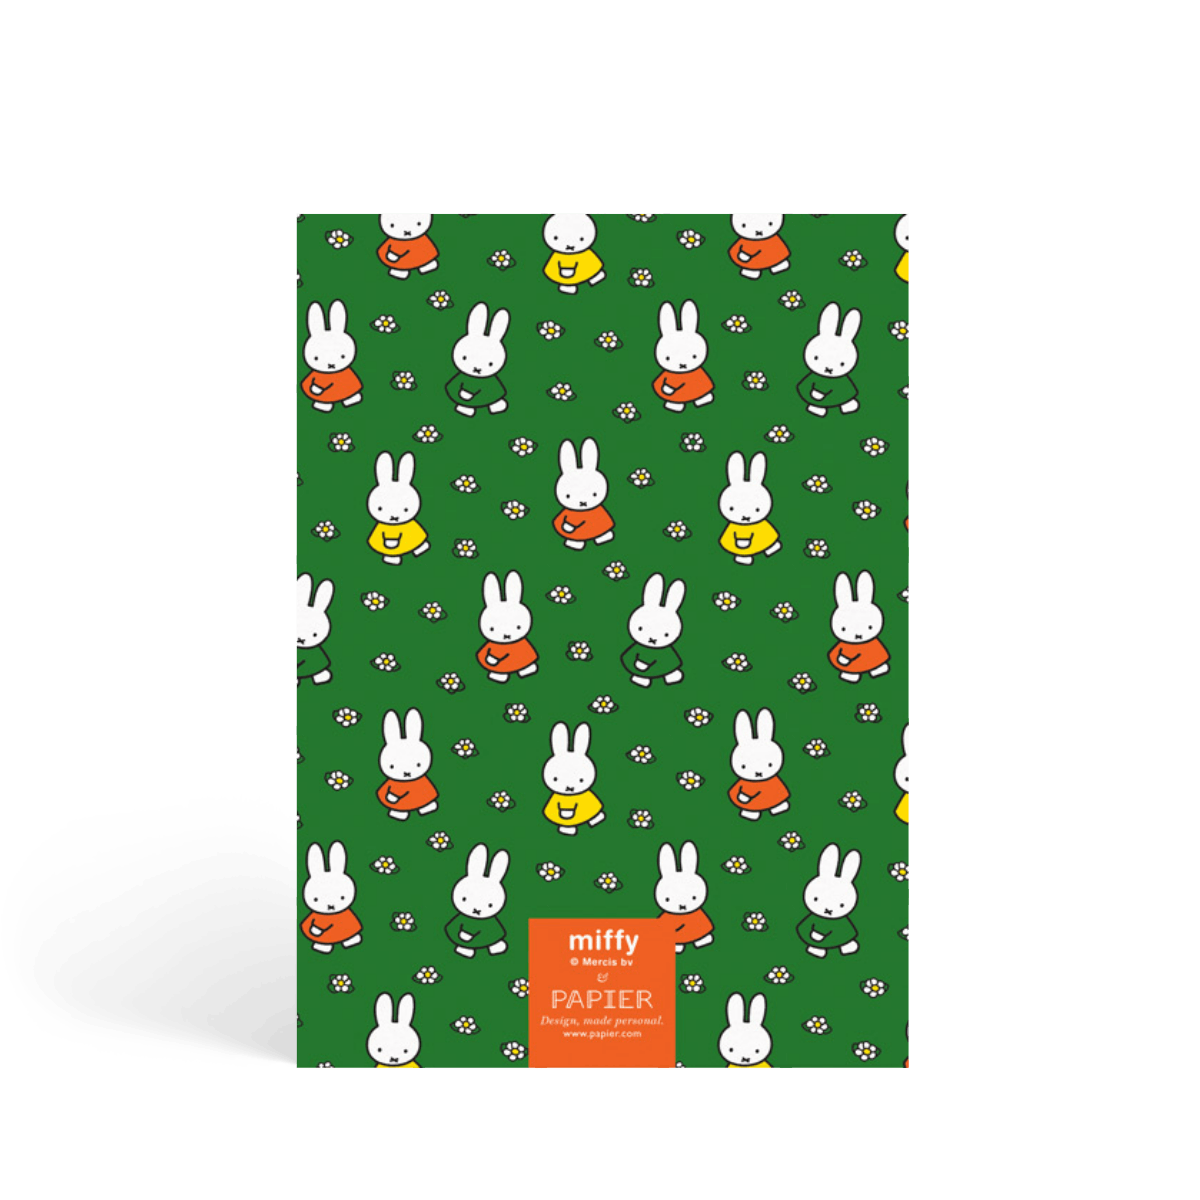 Https%3a%2f%2fwww.papier.com%2fproduct image%2f95636%2f5%2fdaisy miffy 23982 back 1572439011.png?ixlib=rb 1.1